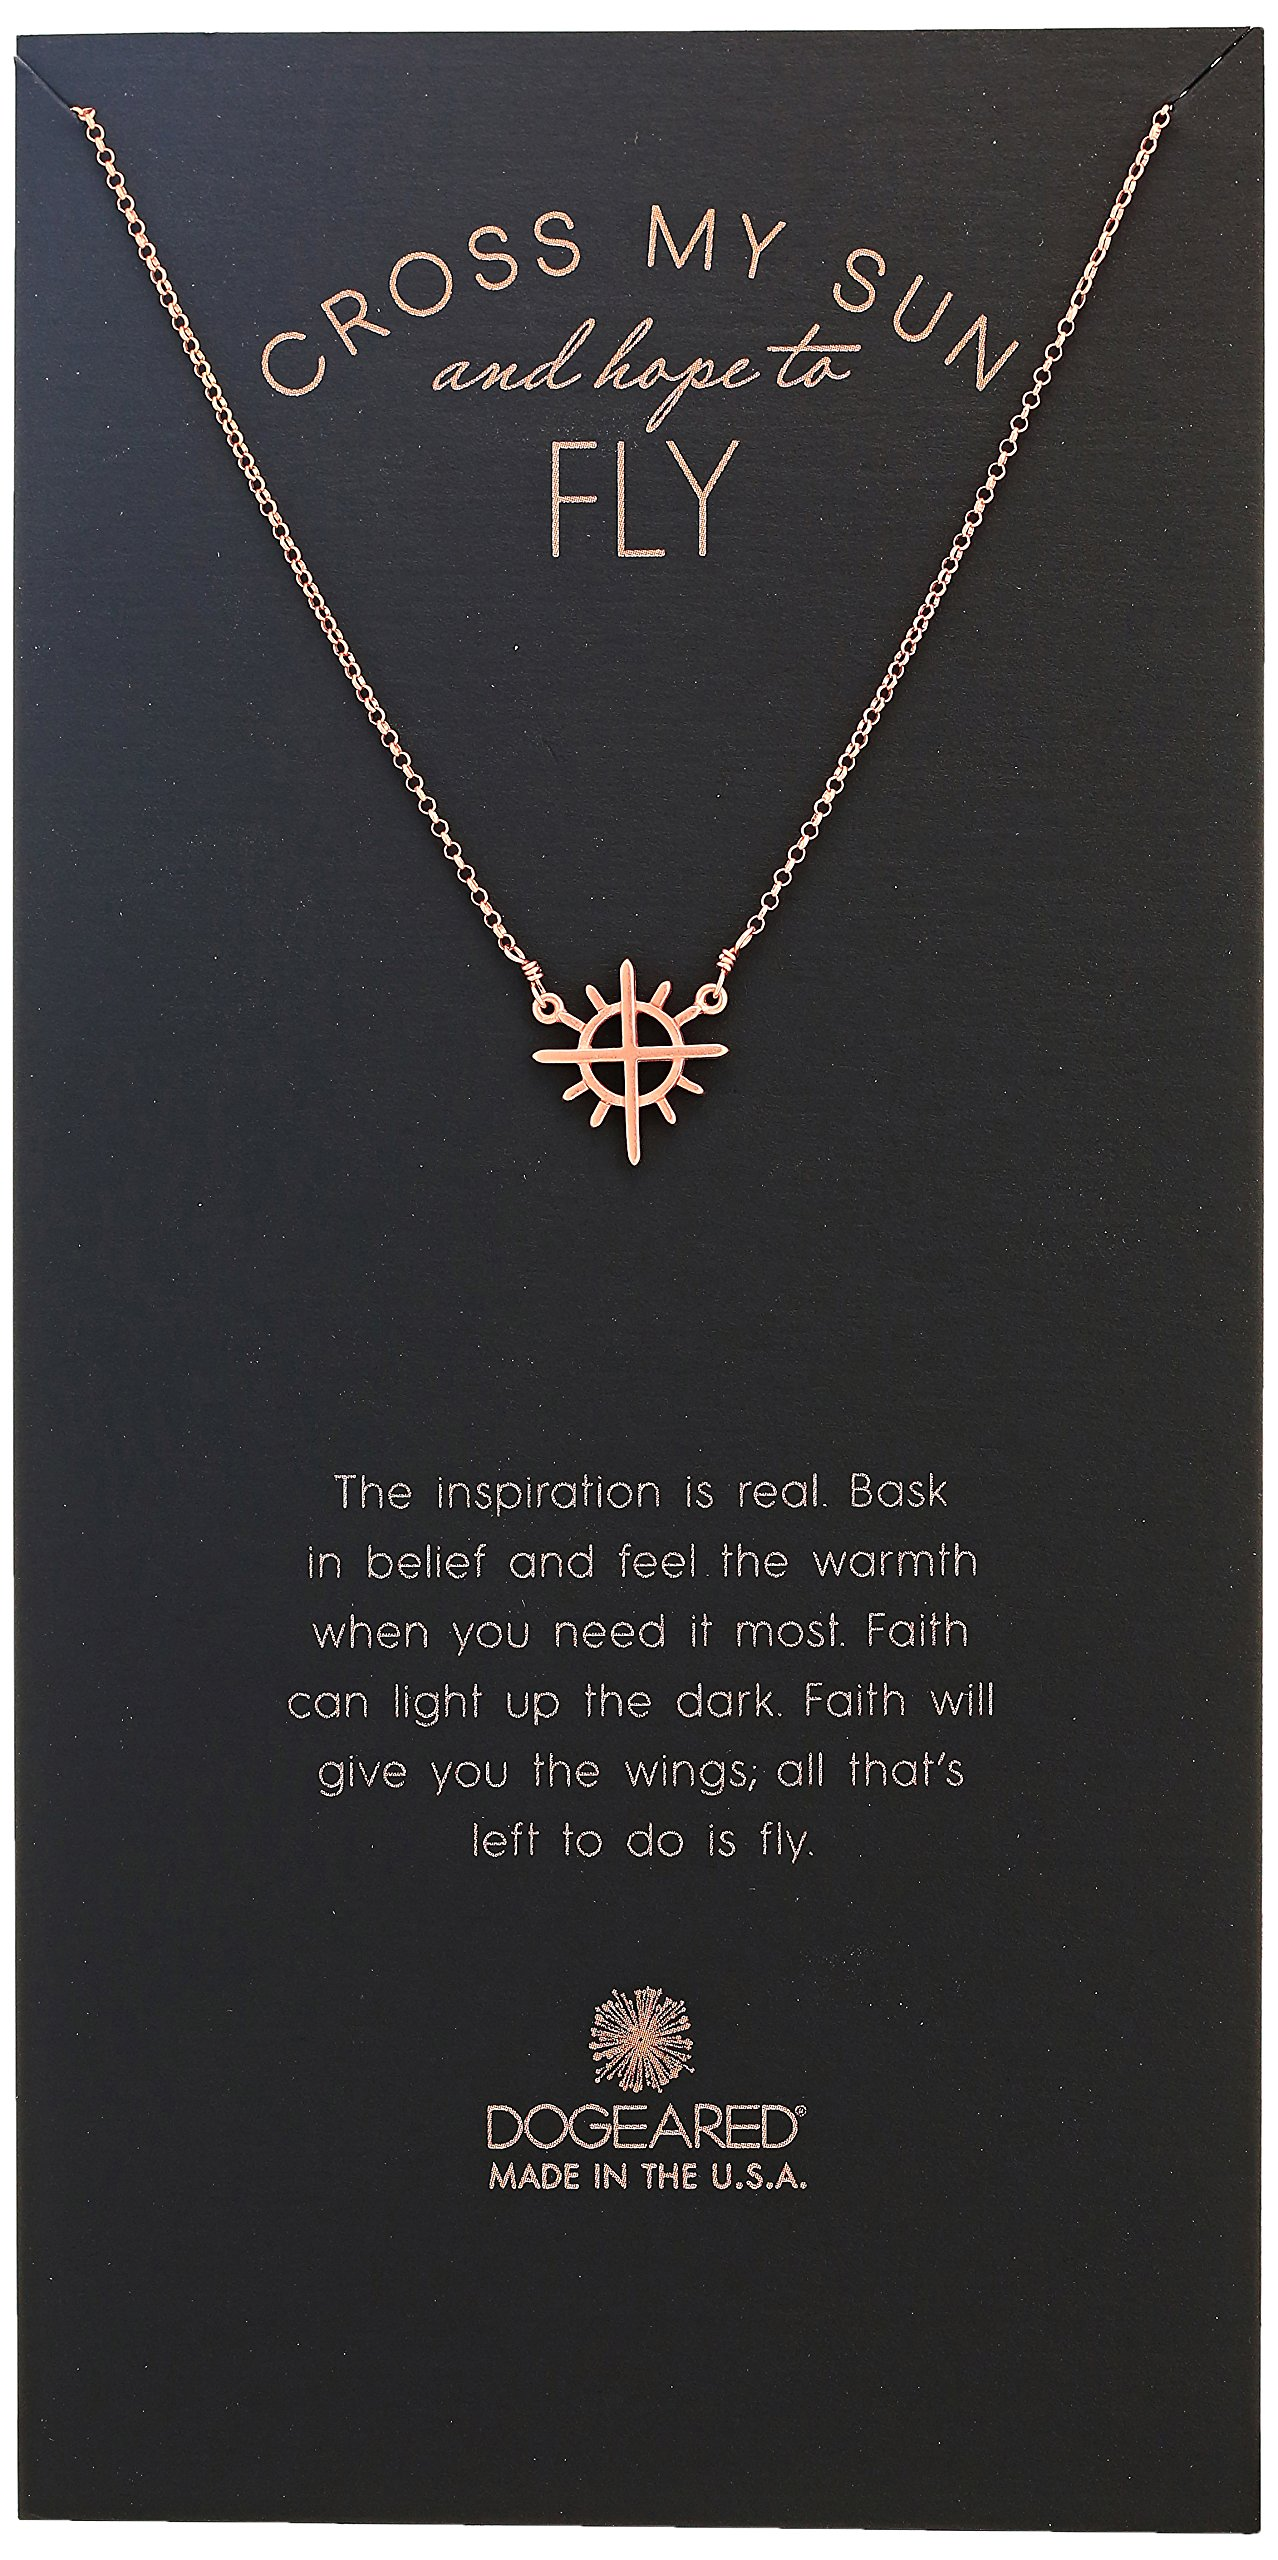 Dogeared Cross My Sun And Hope To Fly, Cross With Rays Charm Chain Necklace, Rose Gold, 16''+2'' Extender